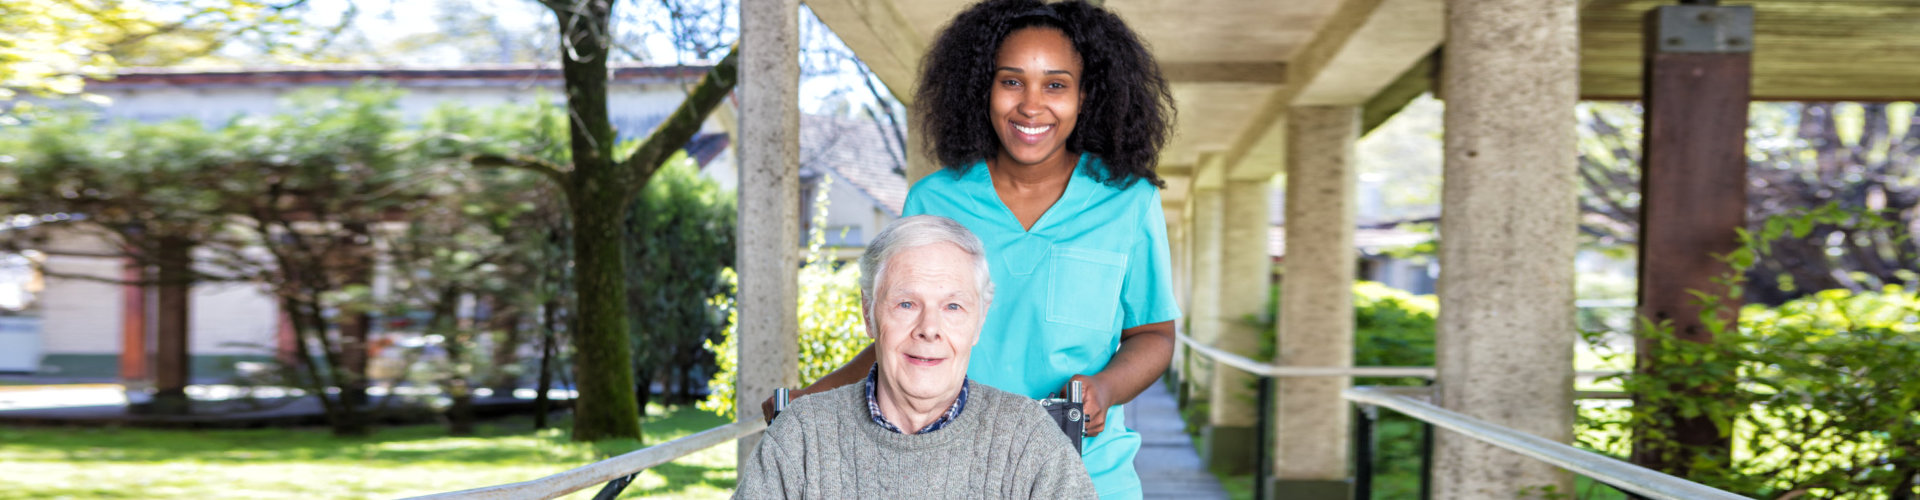 caregiver and senior patient on wheelchair smiling